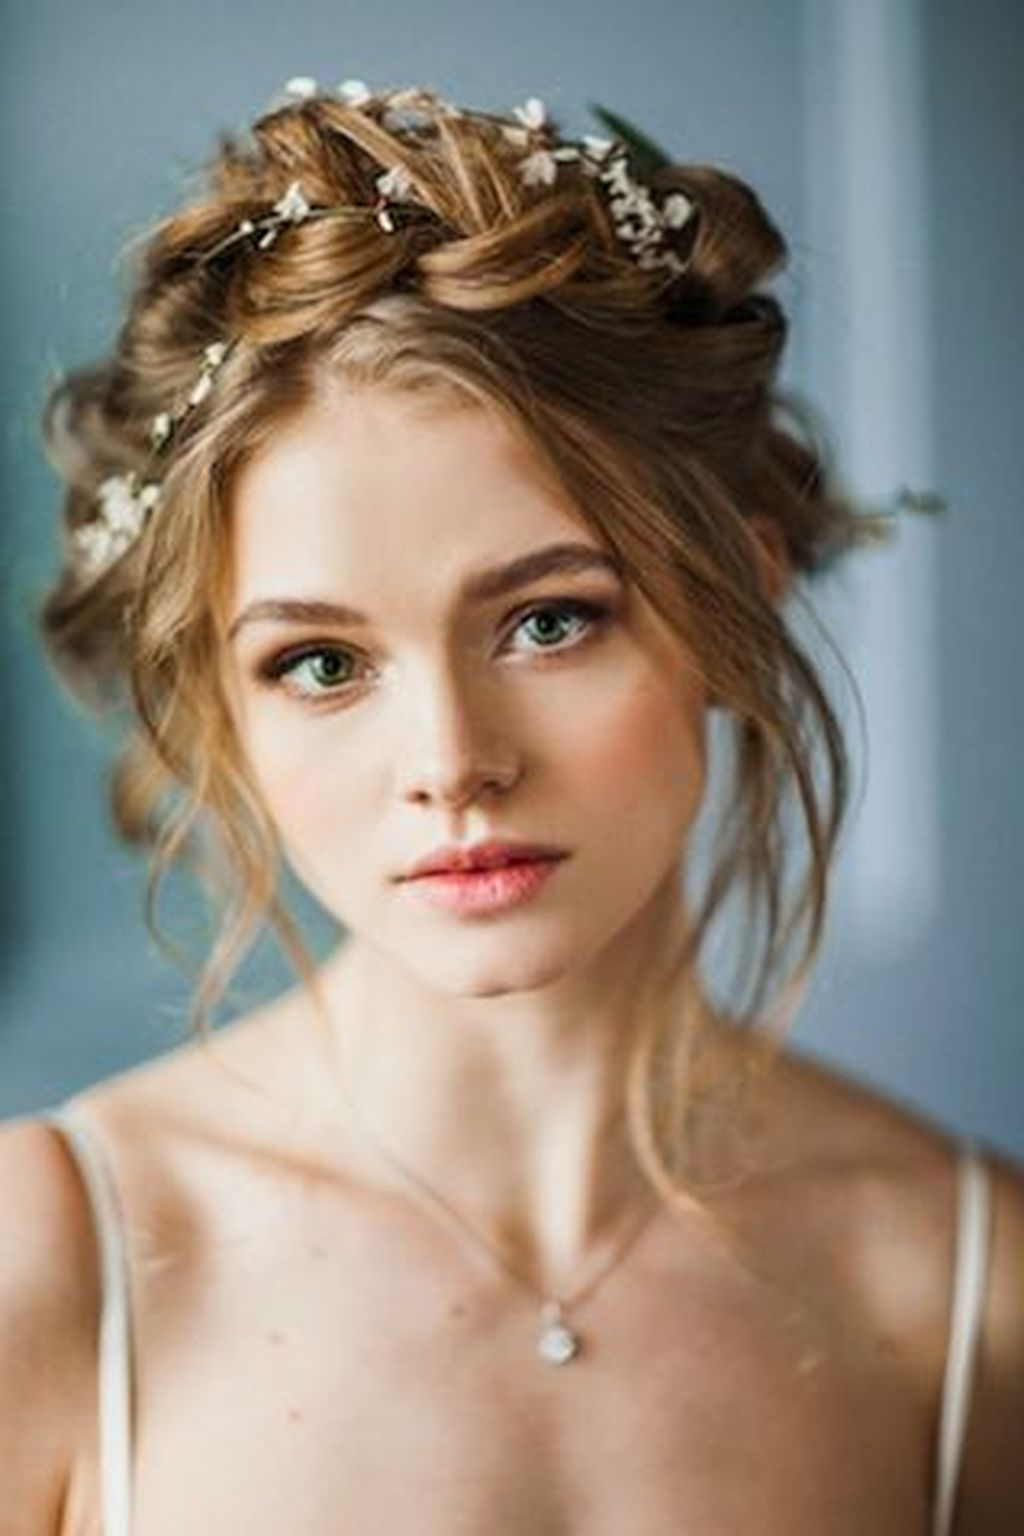 38 Beautiful Crown Braid Hairstyles Ideas With Regard To Most Recently Released Highlighted Braided Crown Bridal Hairstyles (View 3 of 20)